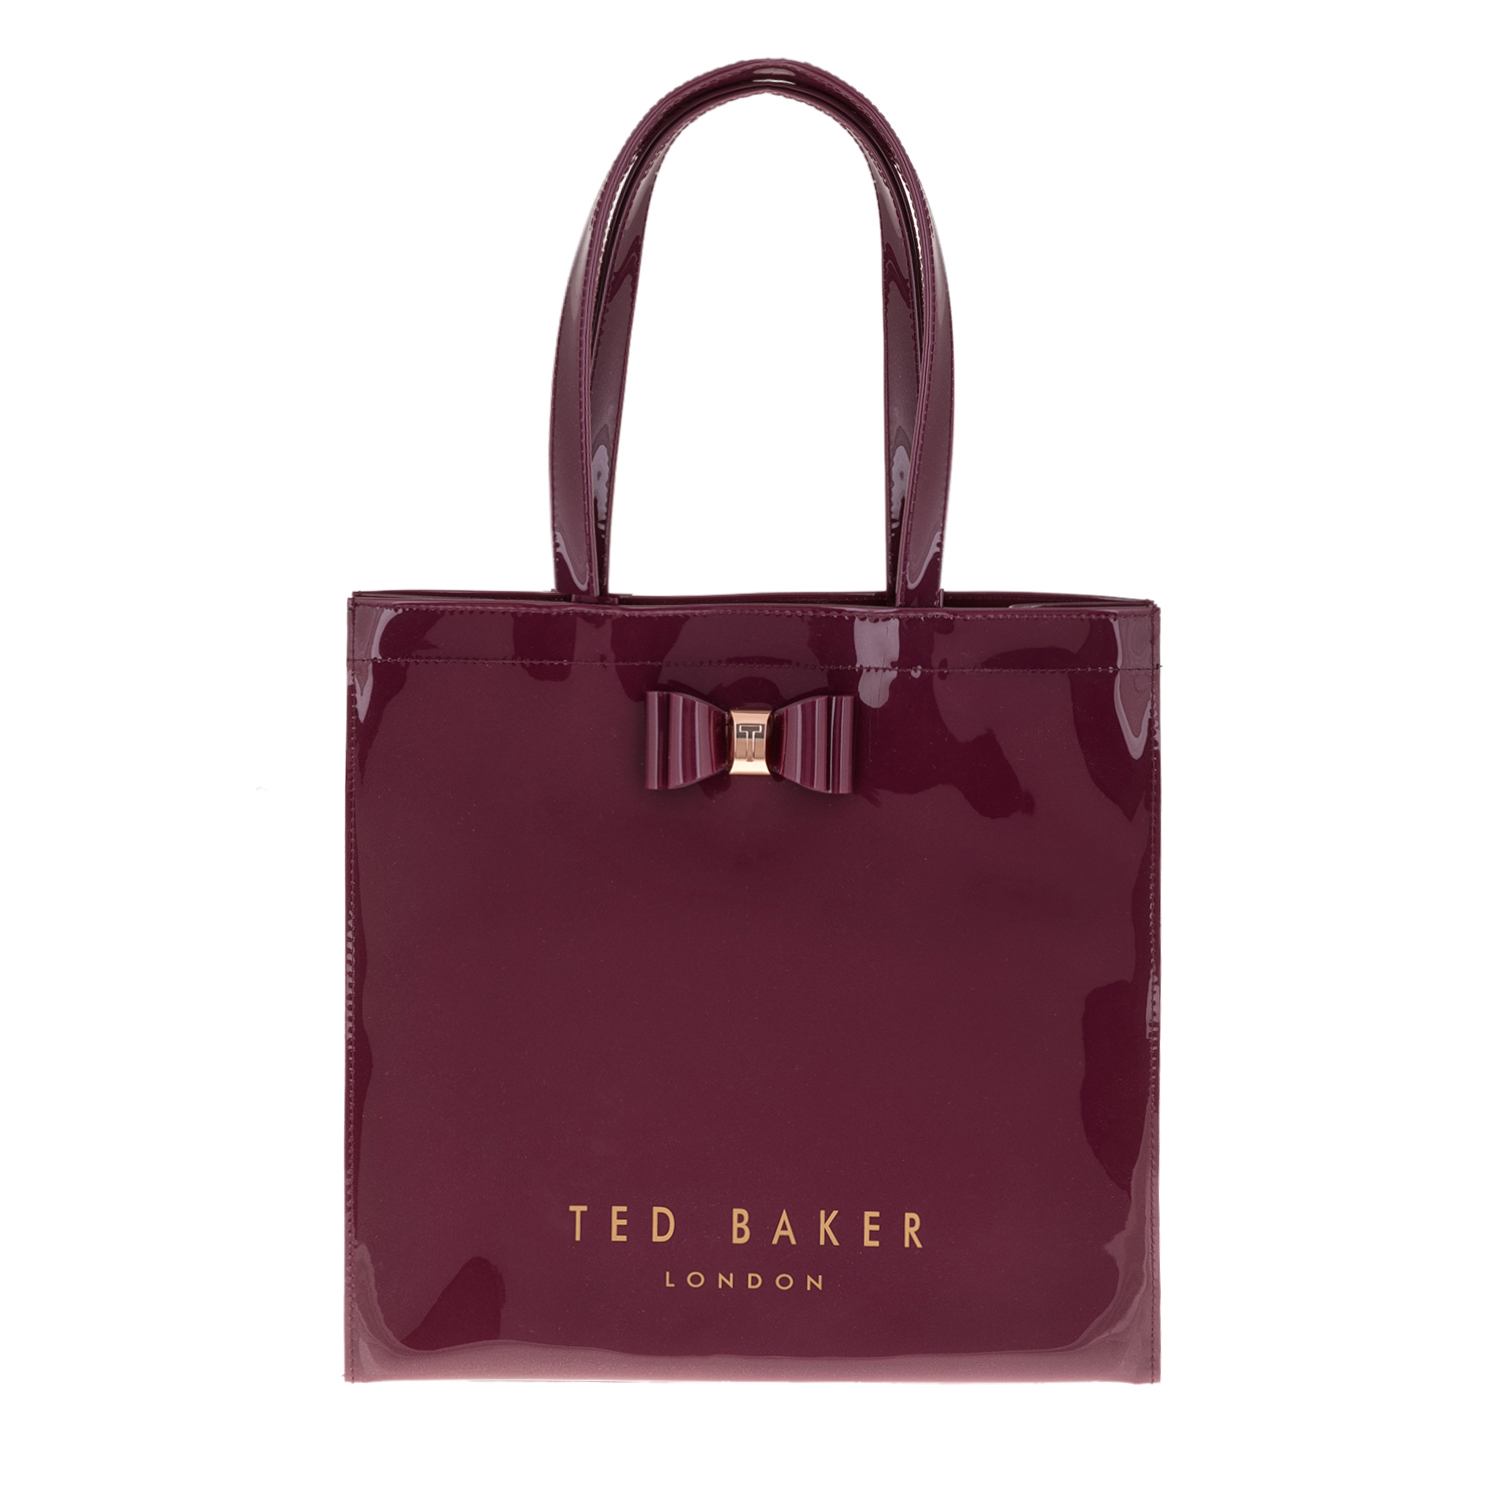 TED BAKER – Γυναικεία τσάντα BETHCON TED BAKER καφέ 1567855.0-0044